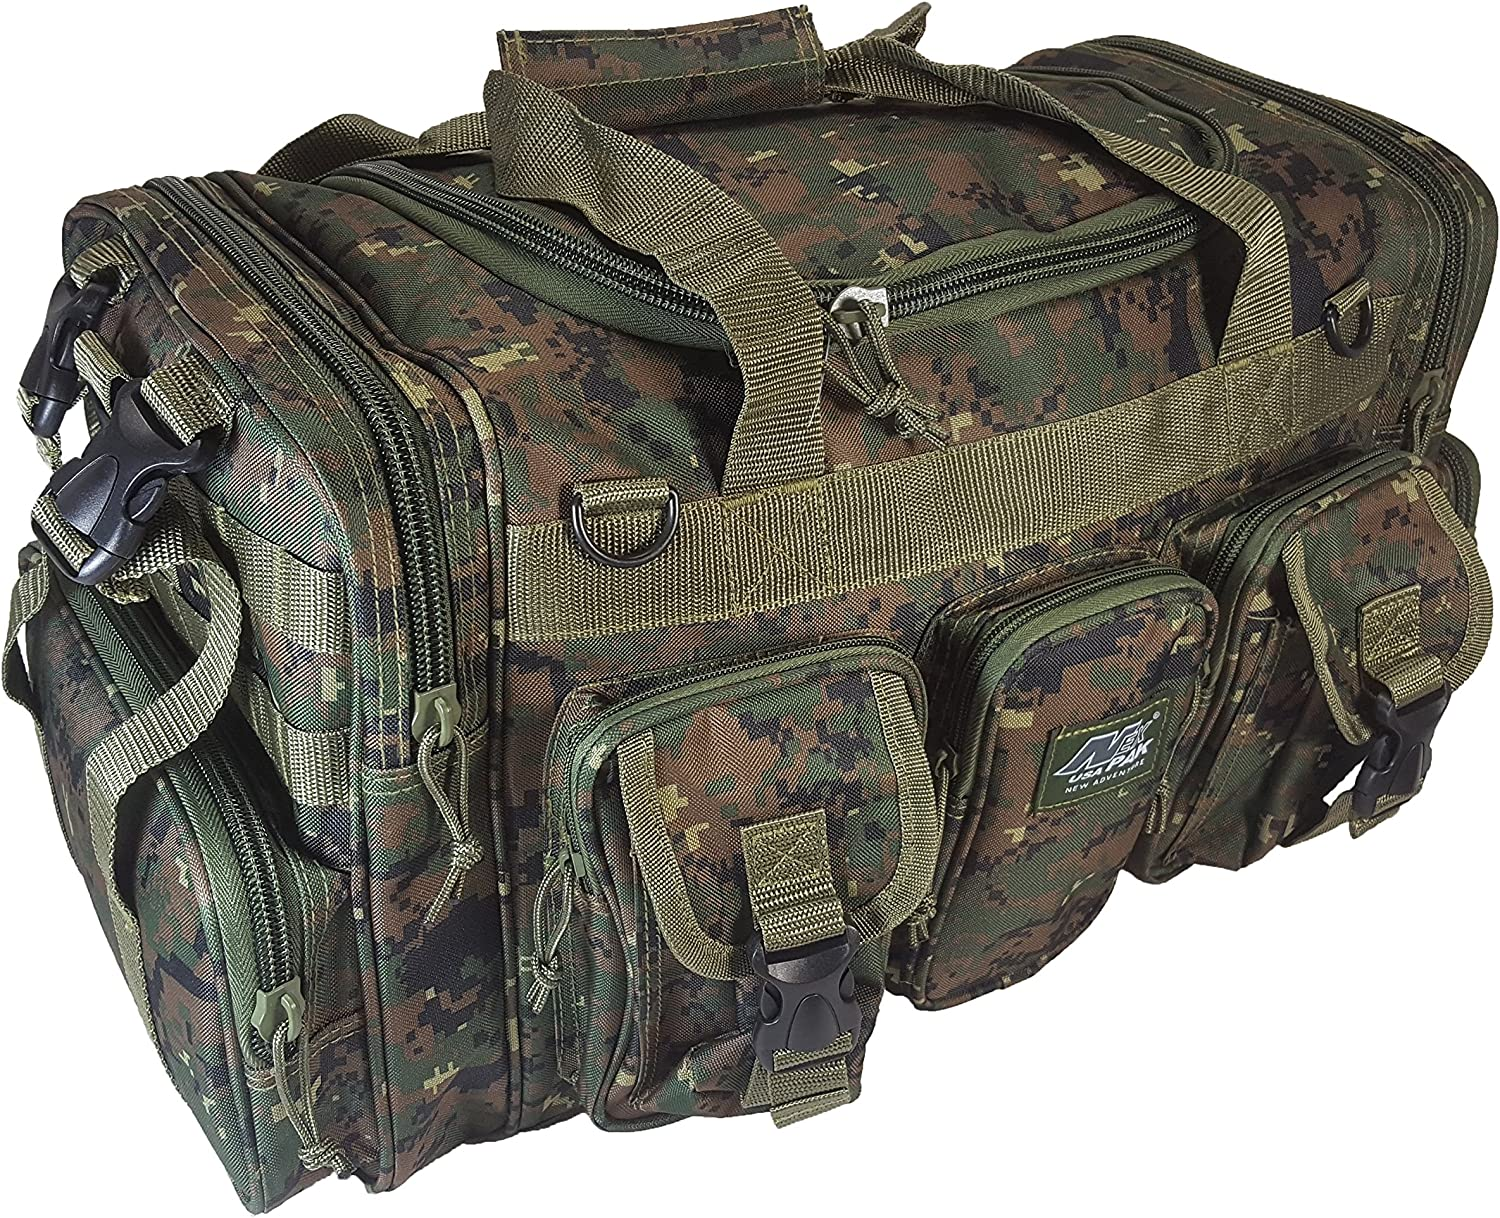 NPUSA Mens Large 22 Duffel Duffle Military Molle Tactical Gear Shoulder Strap Travel Bag